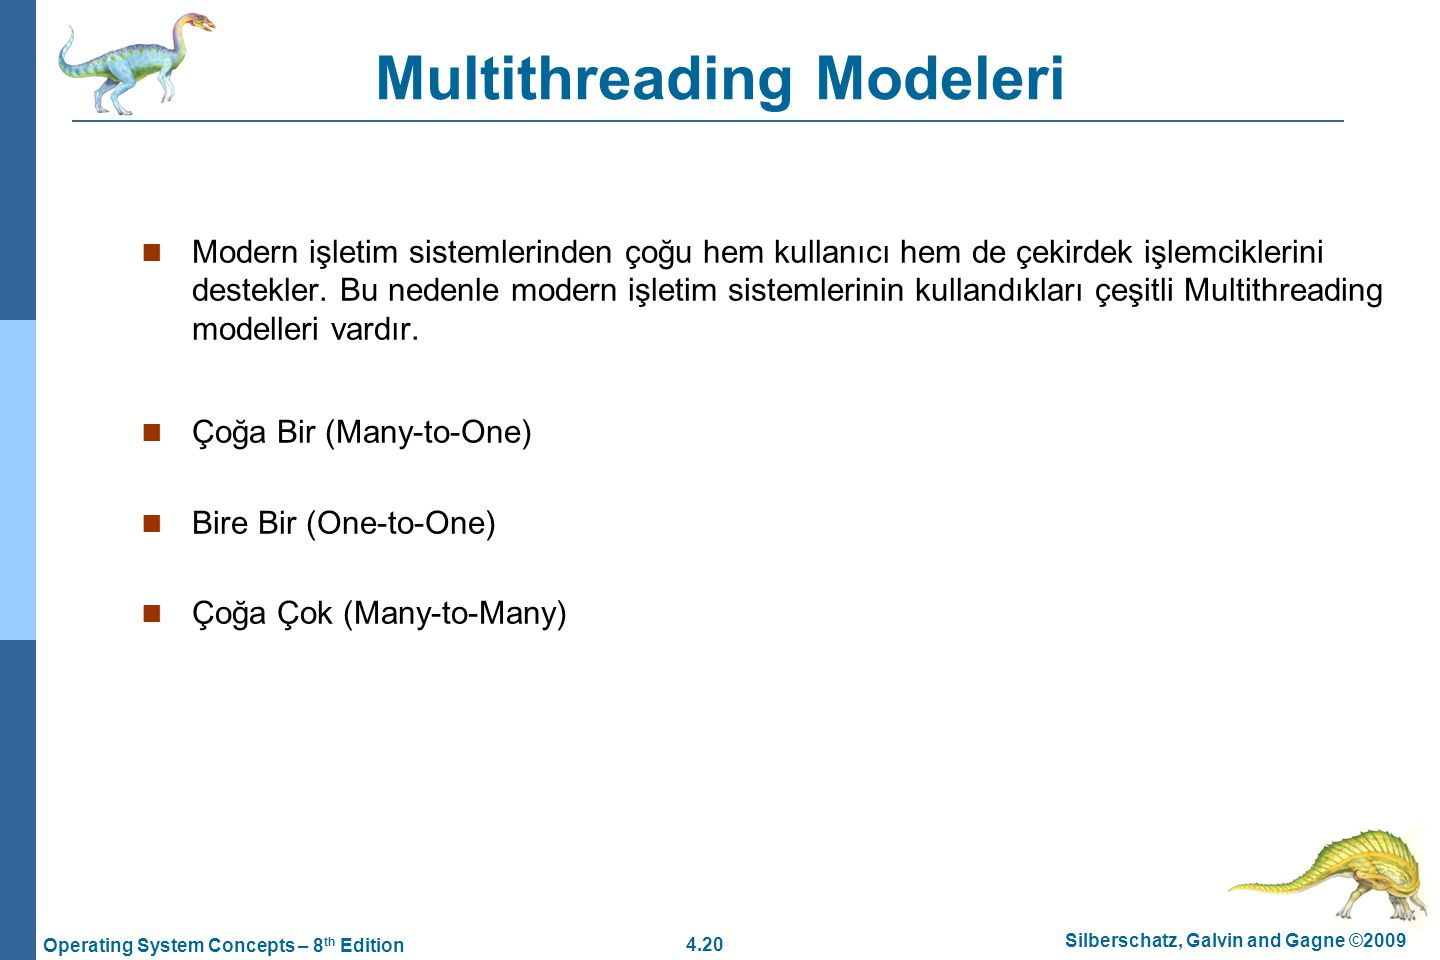 Multithreading Modeleri